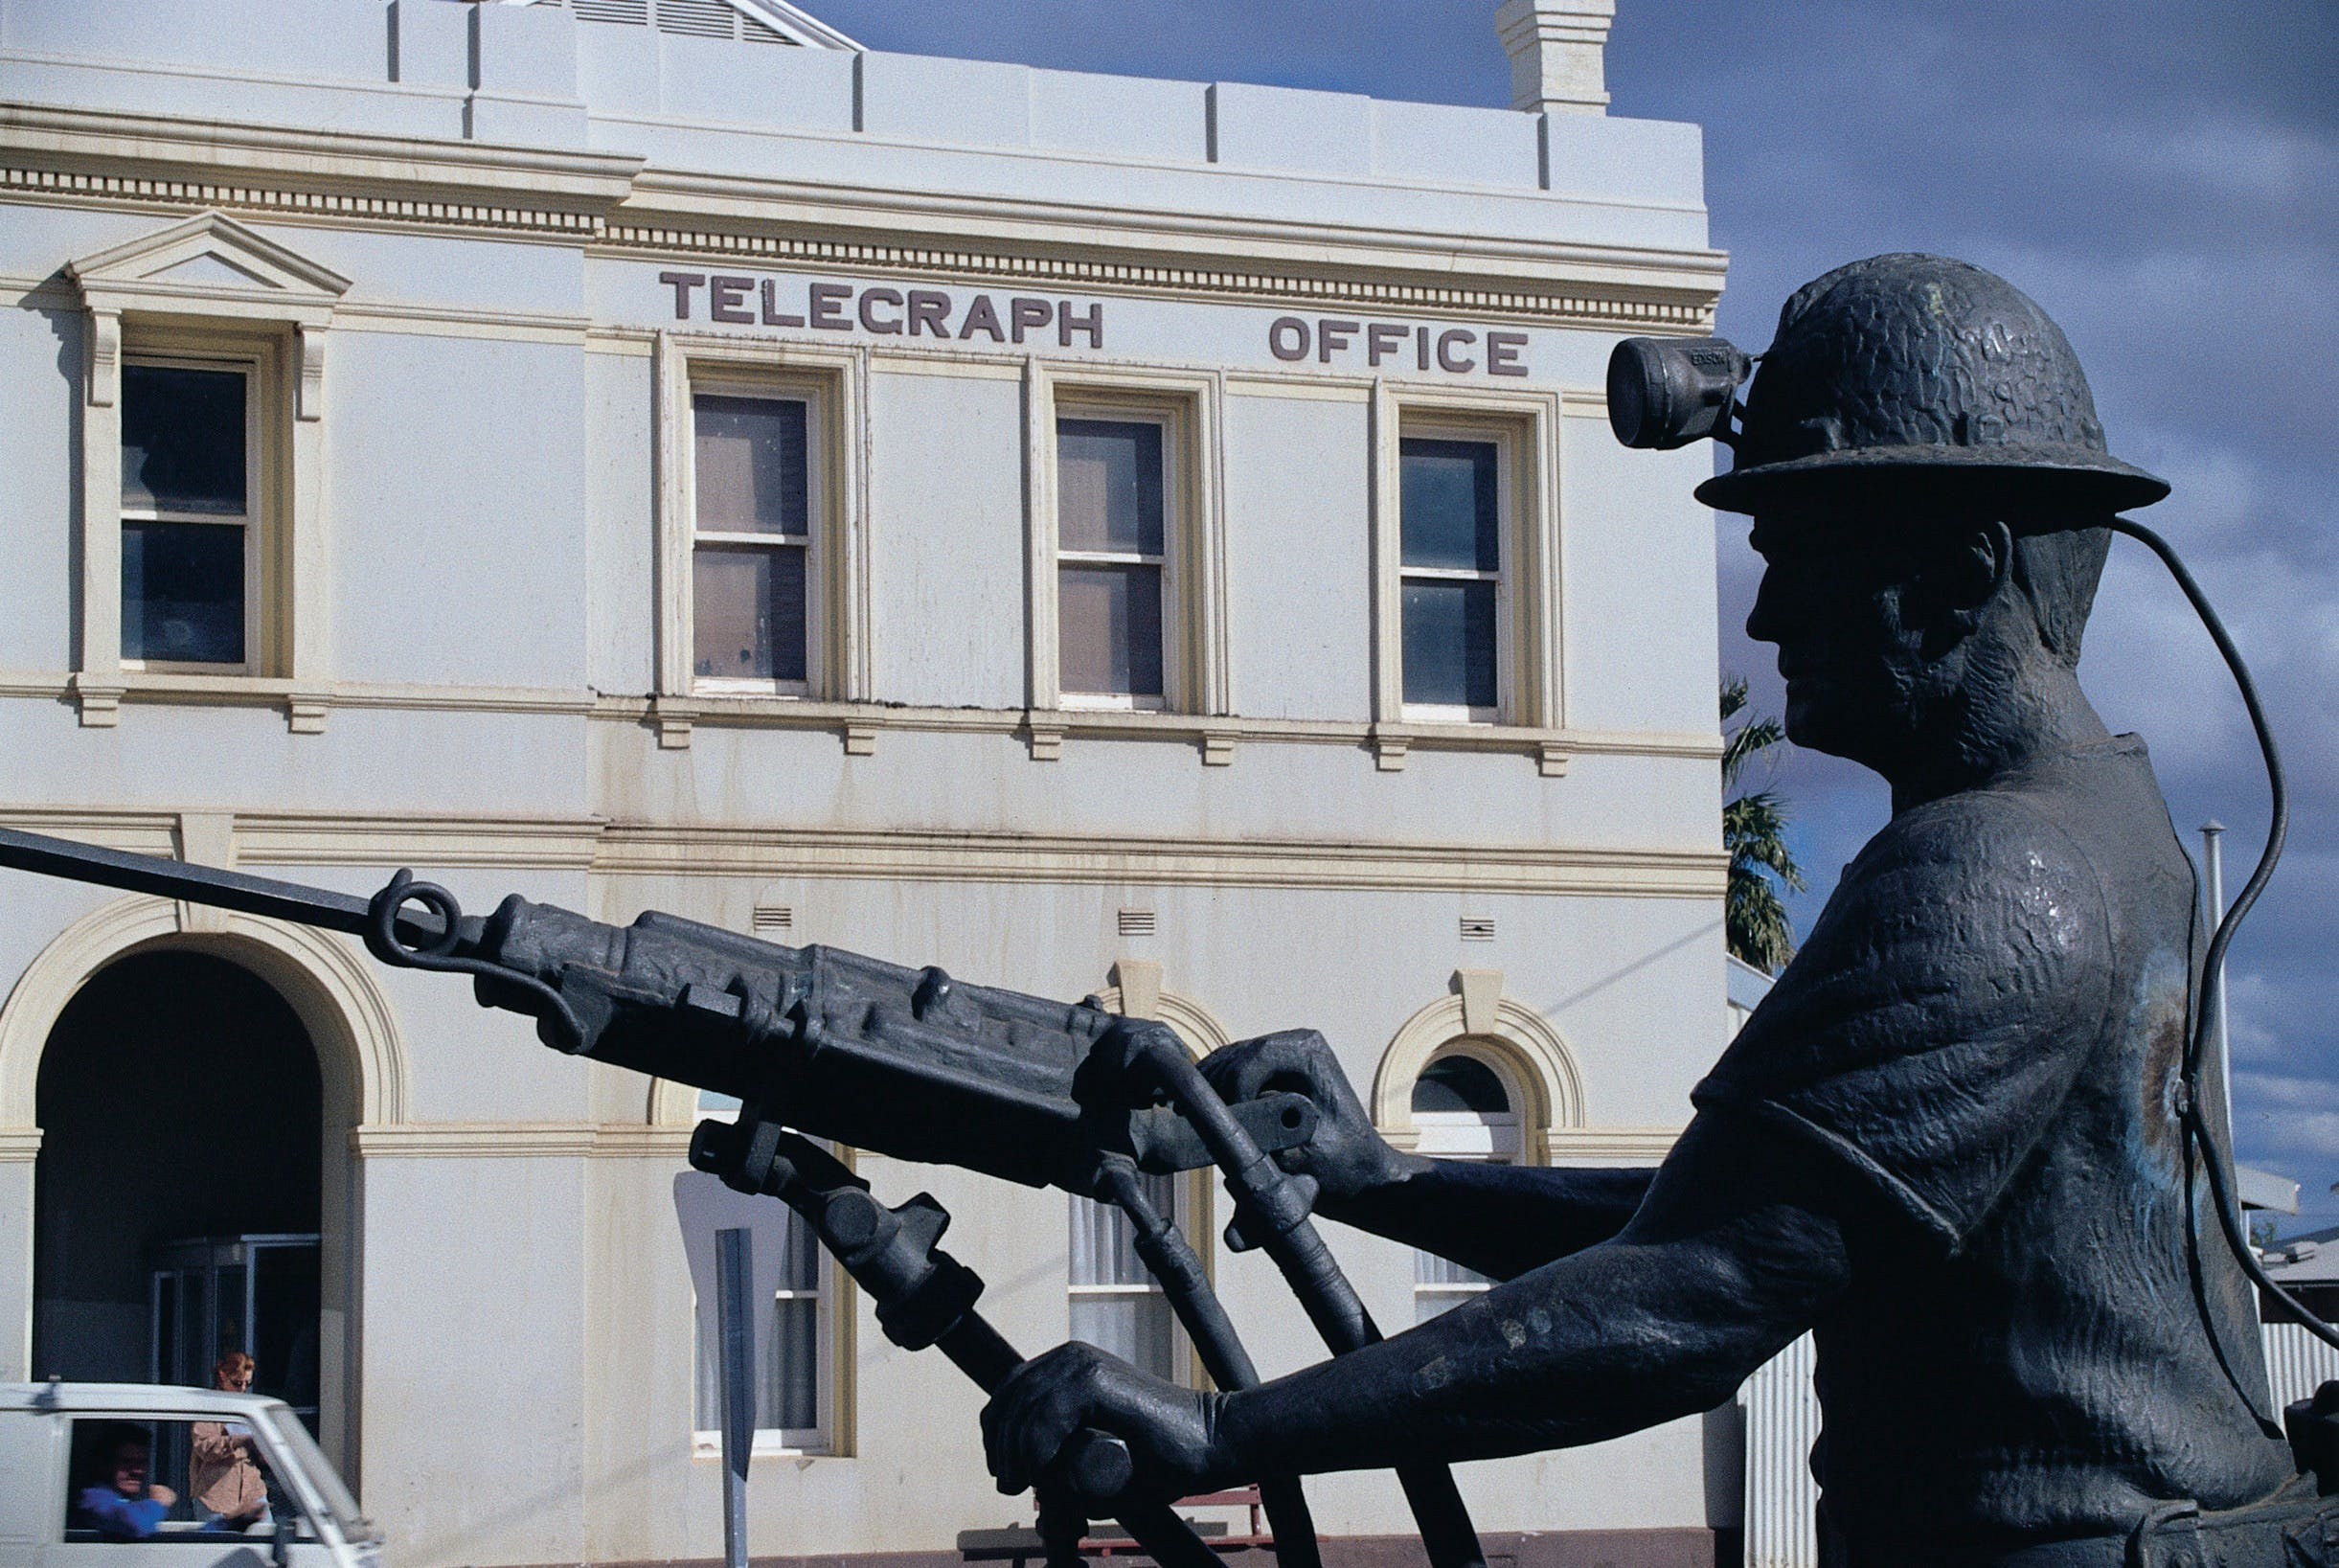 Miners Monument - Accommodation Kalgoorlie